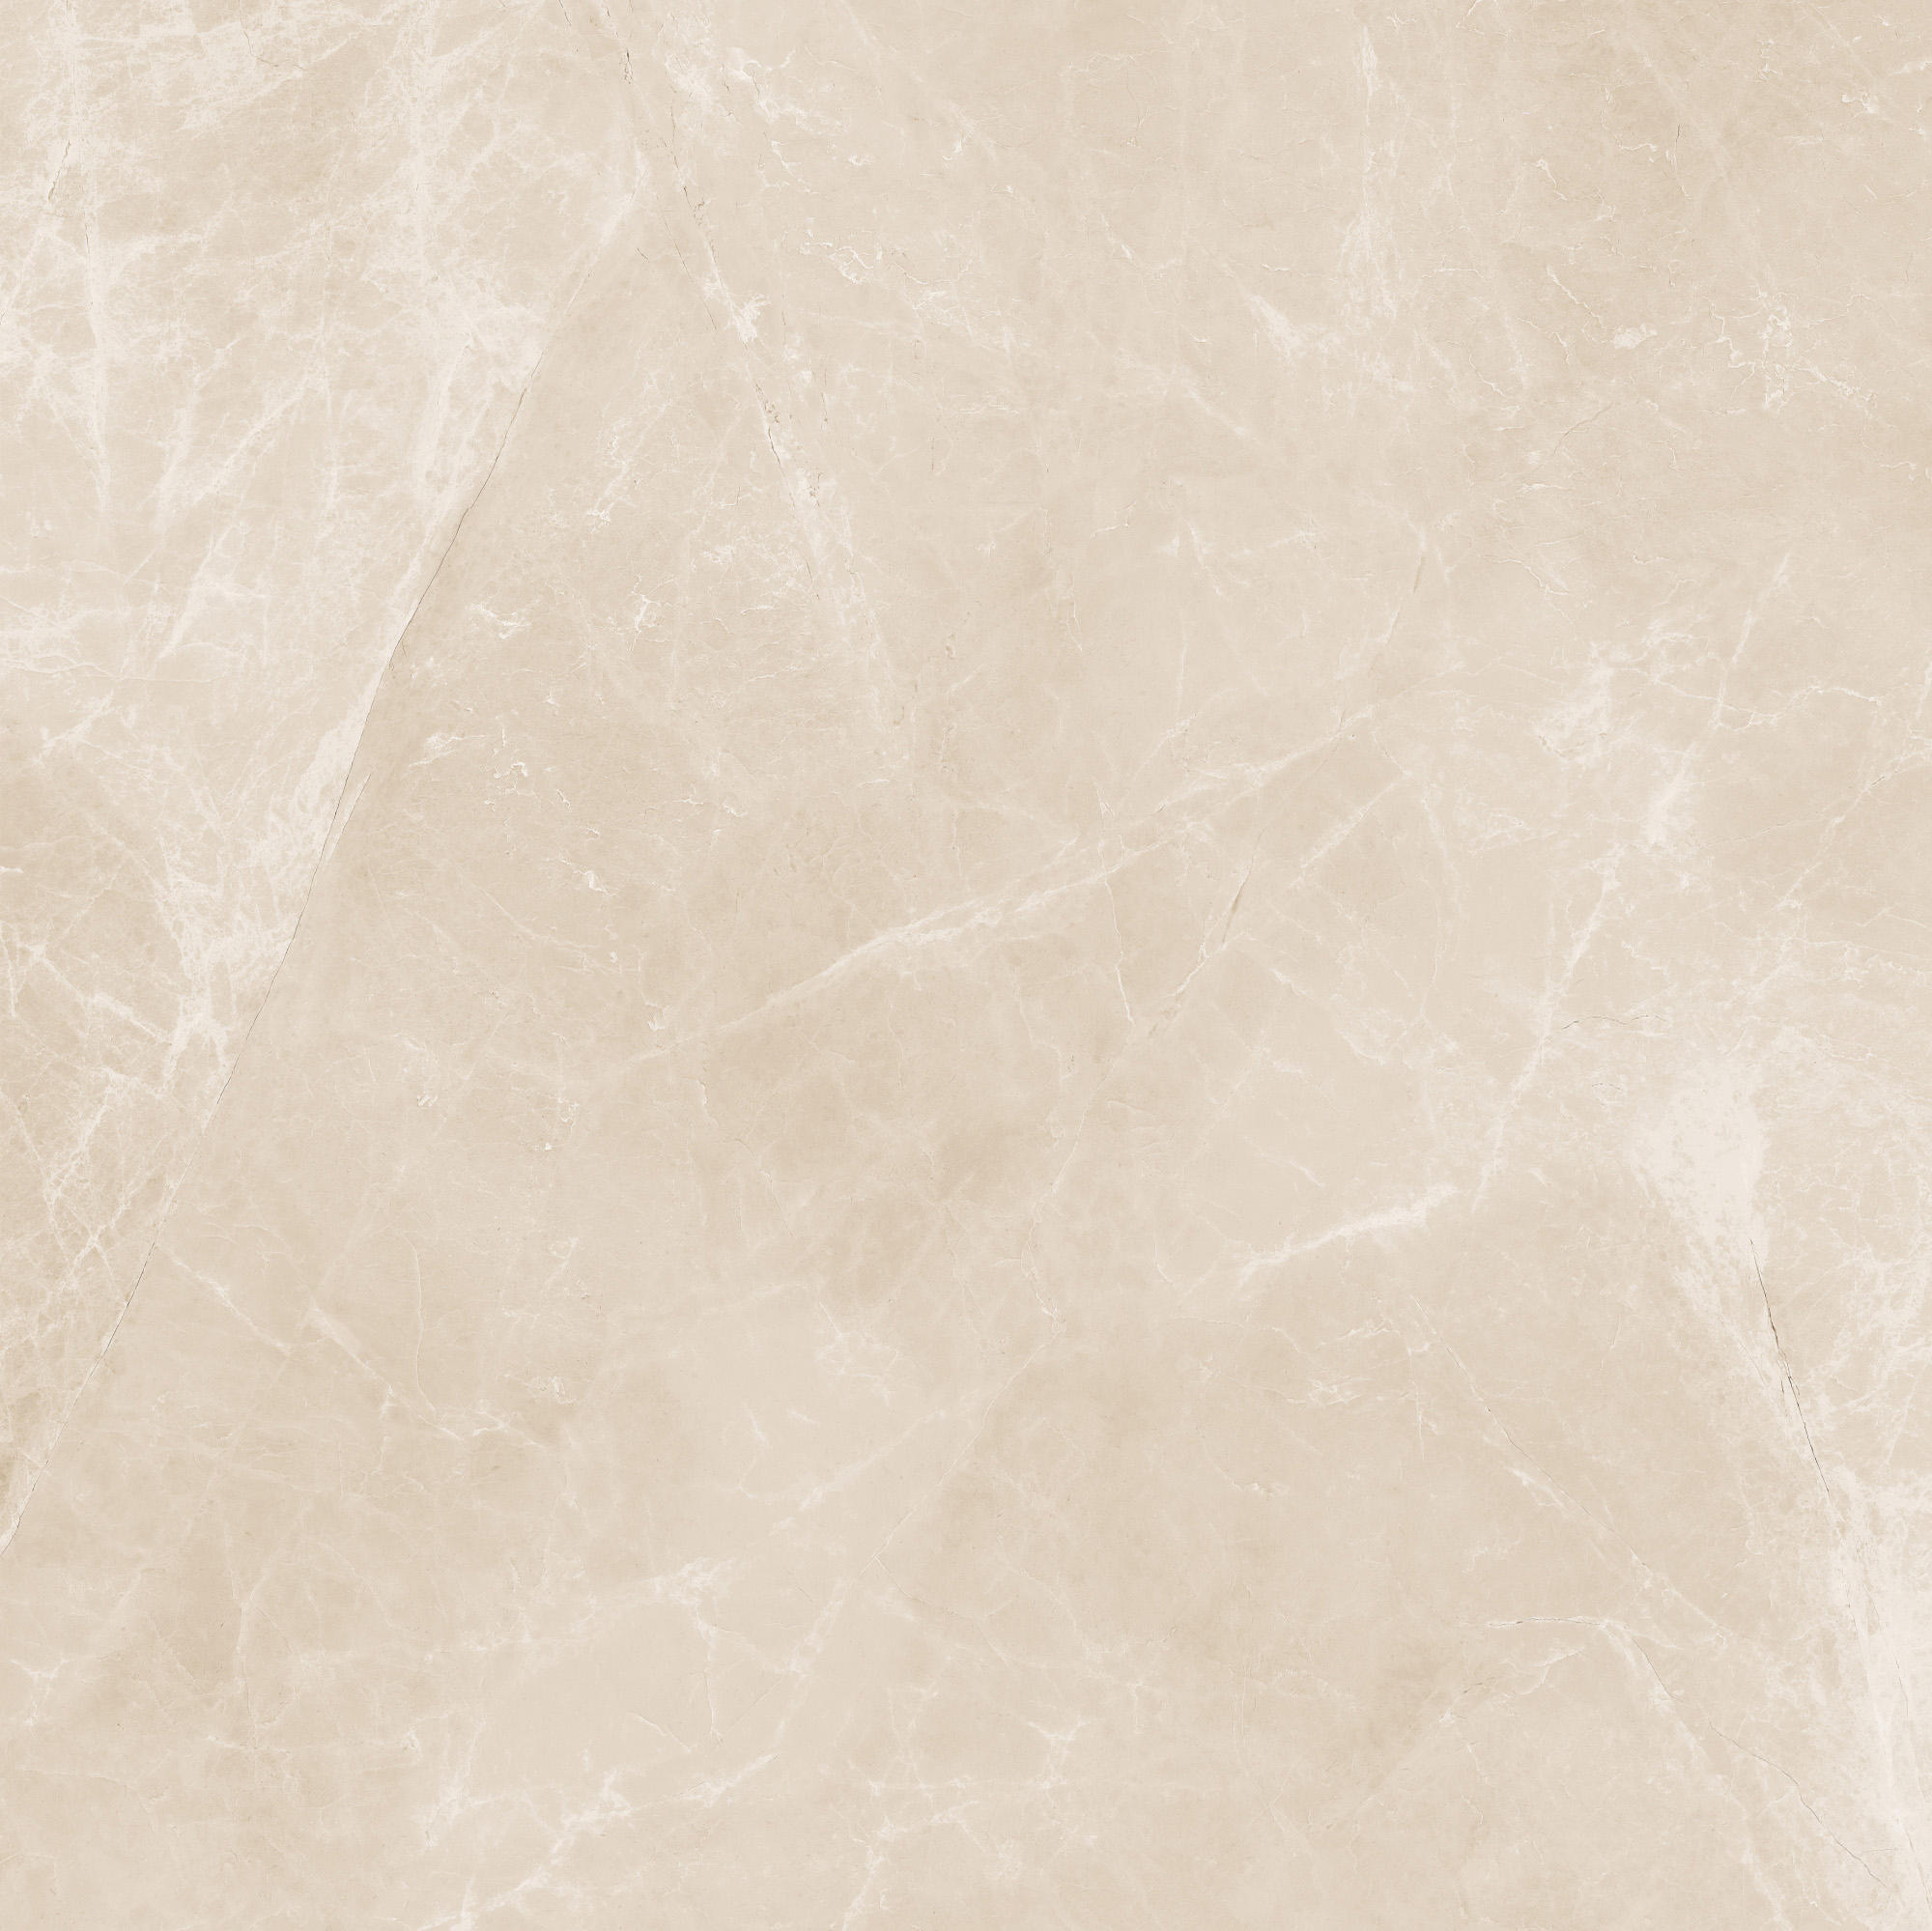 Purity Royal Beige Lux Ceramic Tiles From Ceramiche